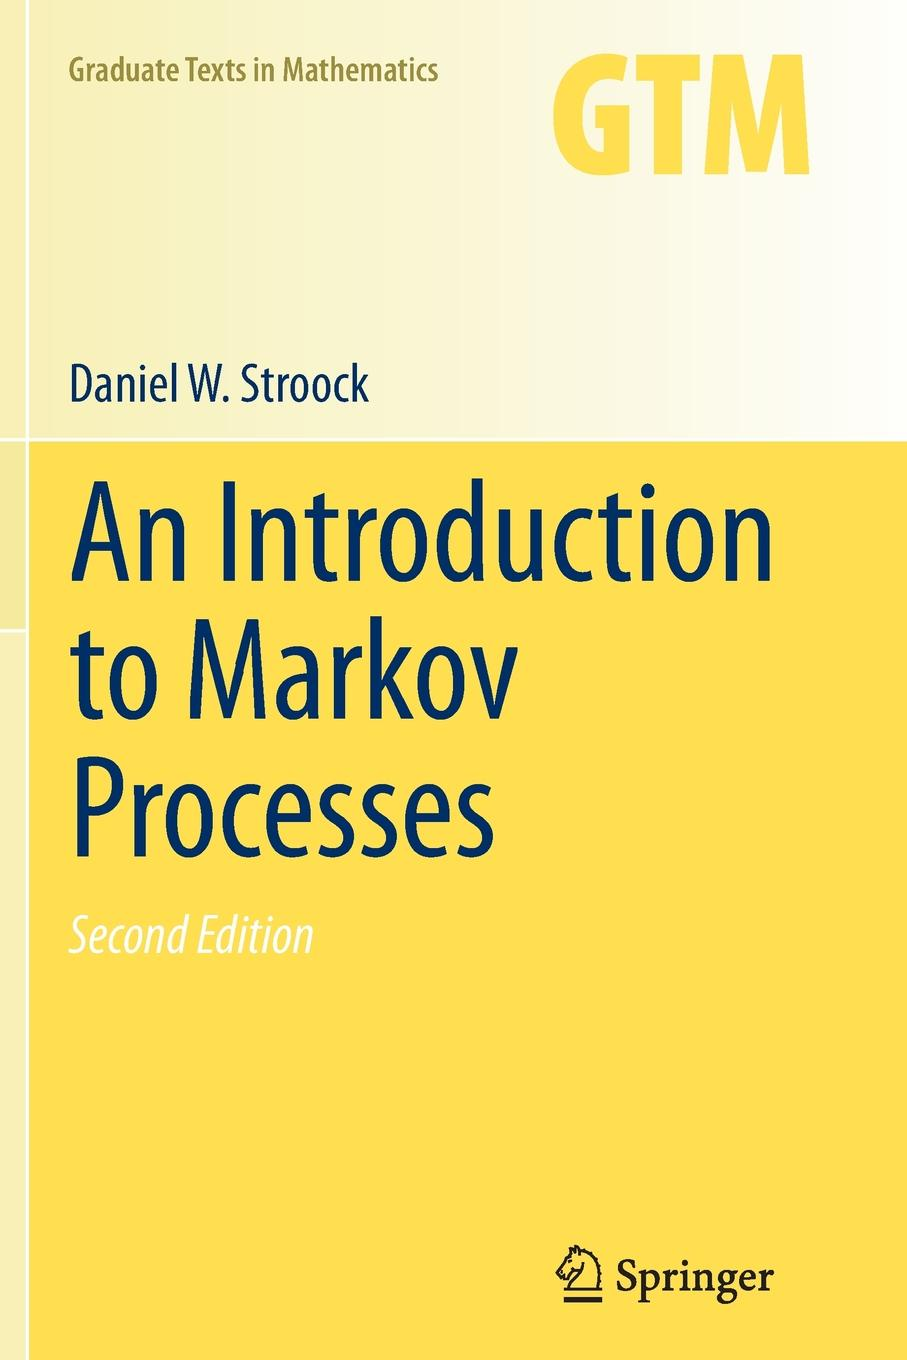 Daniel W. Stroock An Introduction to Markov Processes m l silverstein boundary theory for symmetric markov processes